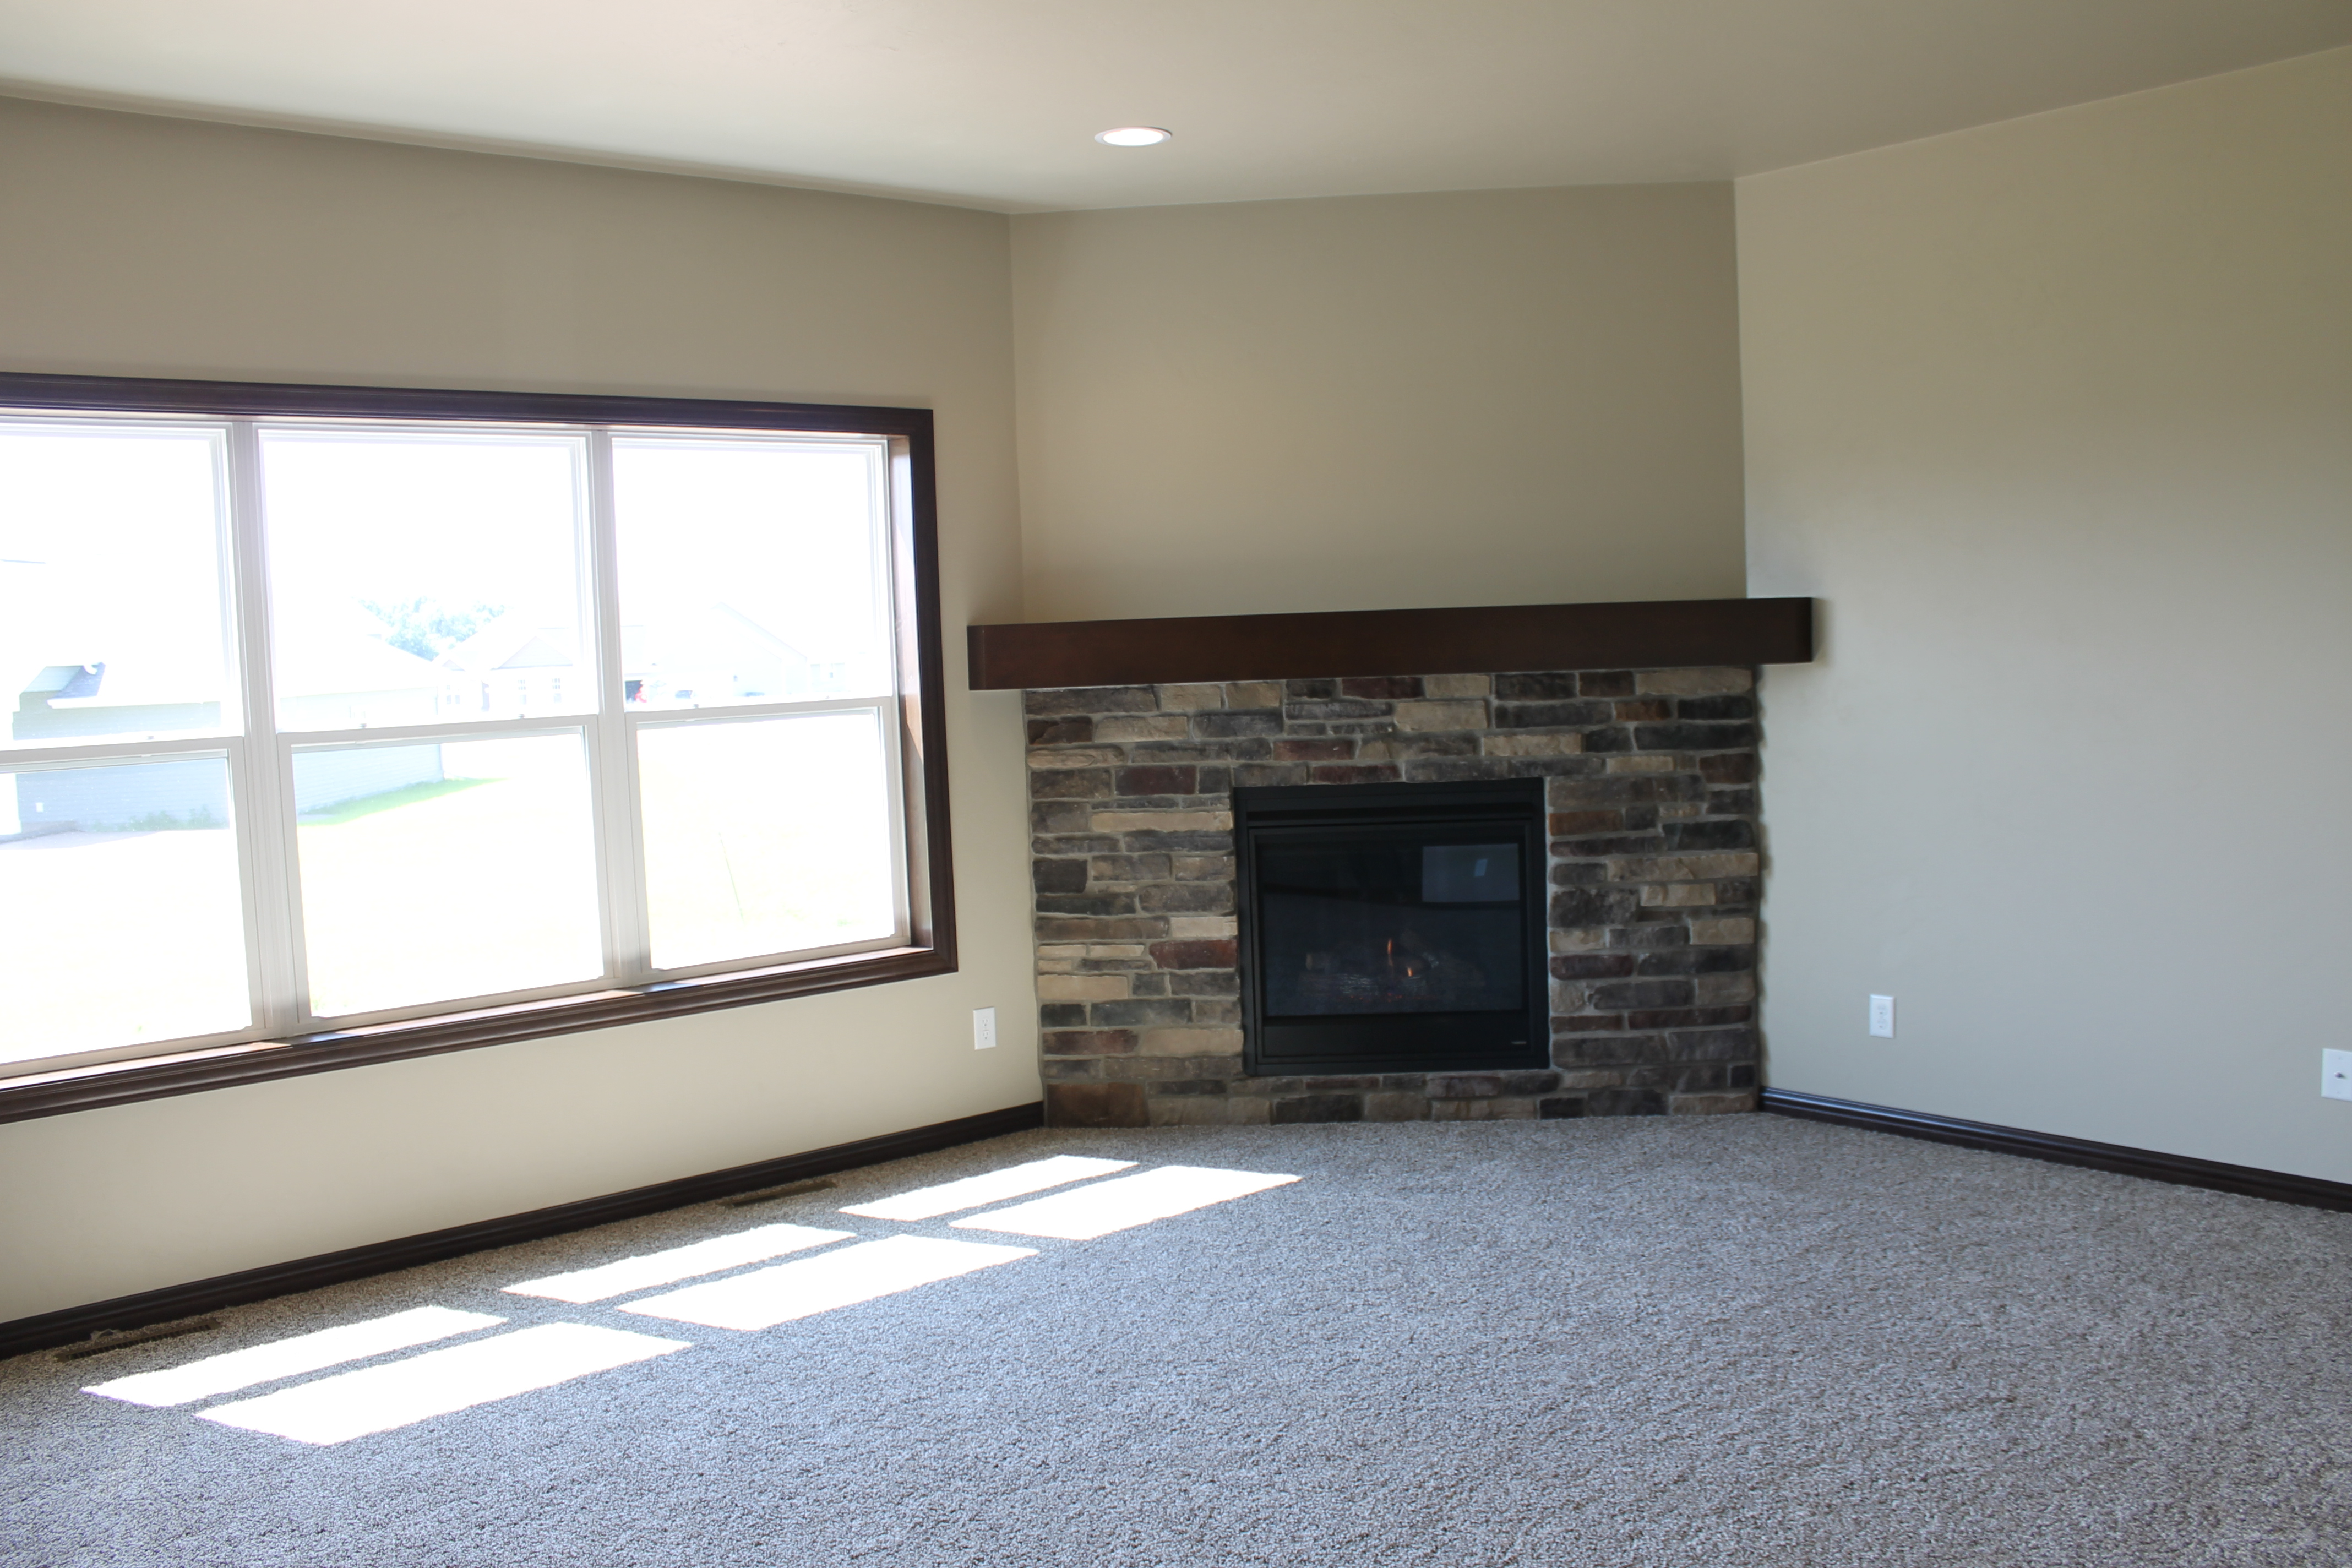 Here Are Some Additional Pictures Of Corner Fireplace Design Without Stone To The Ceiling